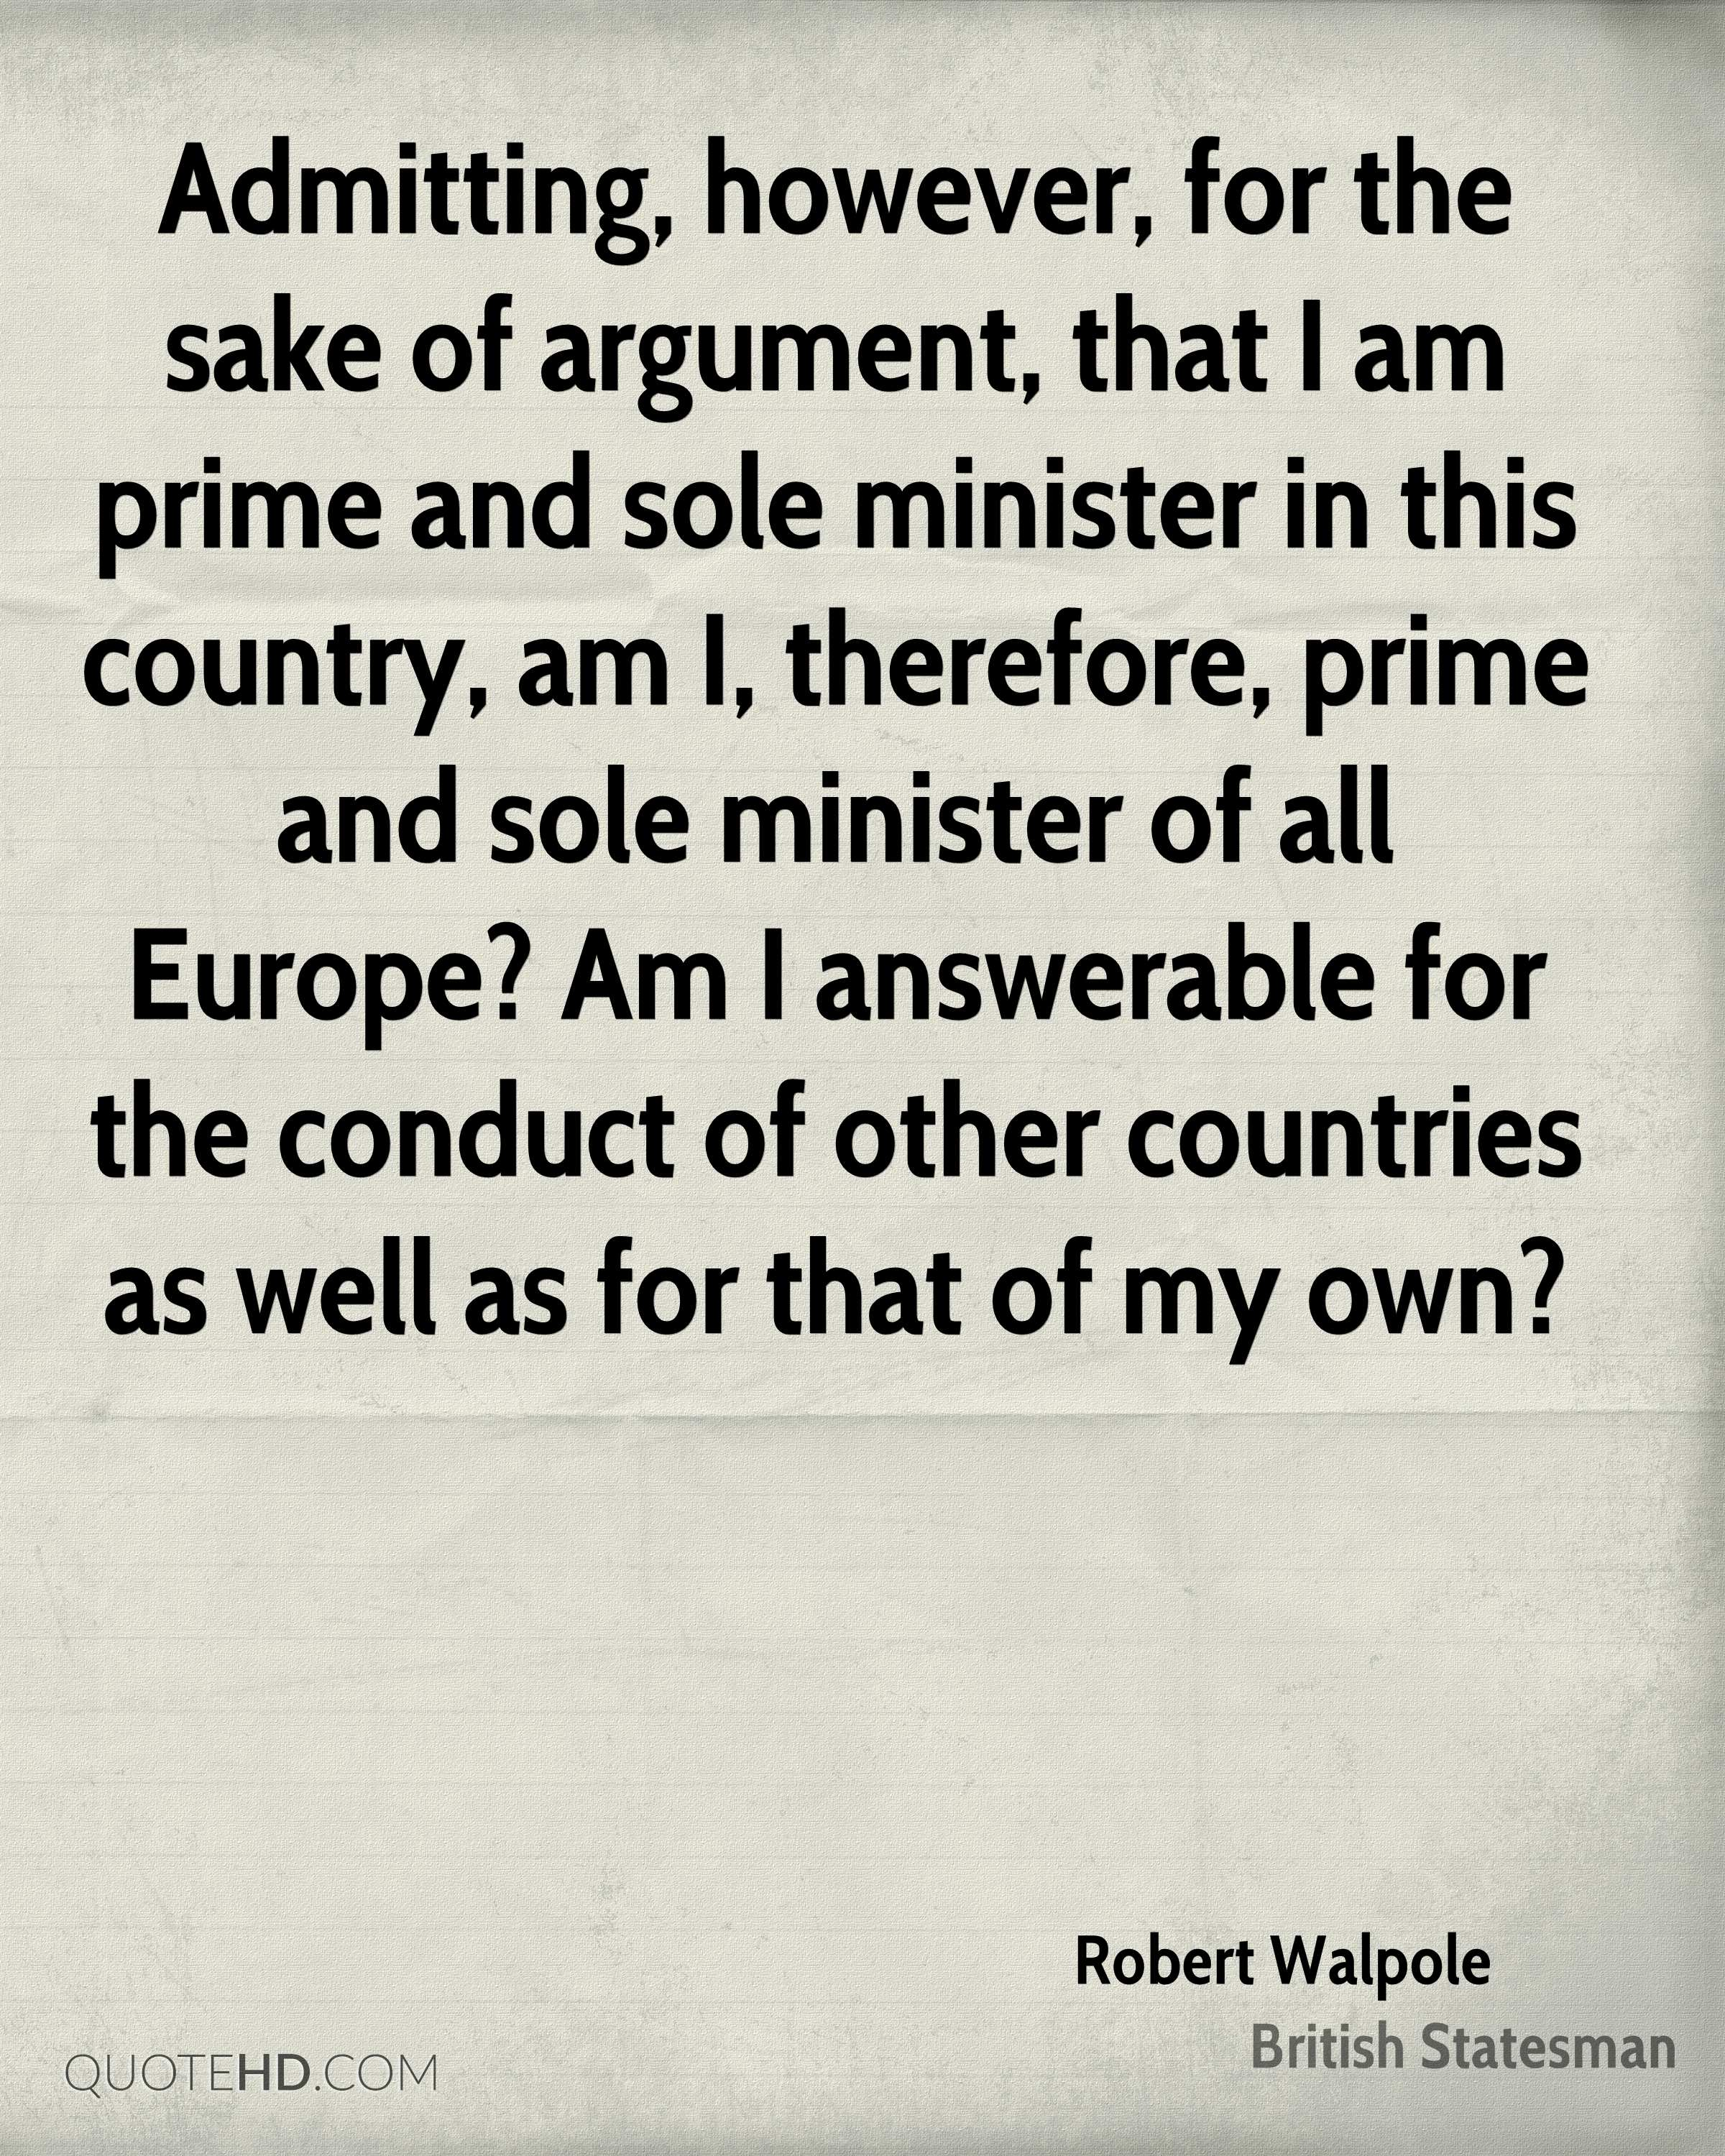 Admitting, however, for the sake of argument, that I am prime and sole minister in this country, am I, therefore, prime and sole minister of all Europe? Am I answerable for the conduct of other countries as well as for that of my own?